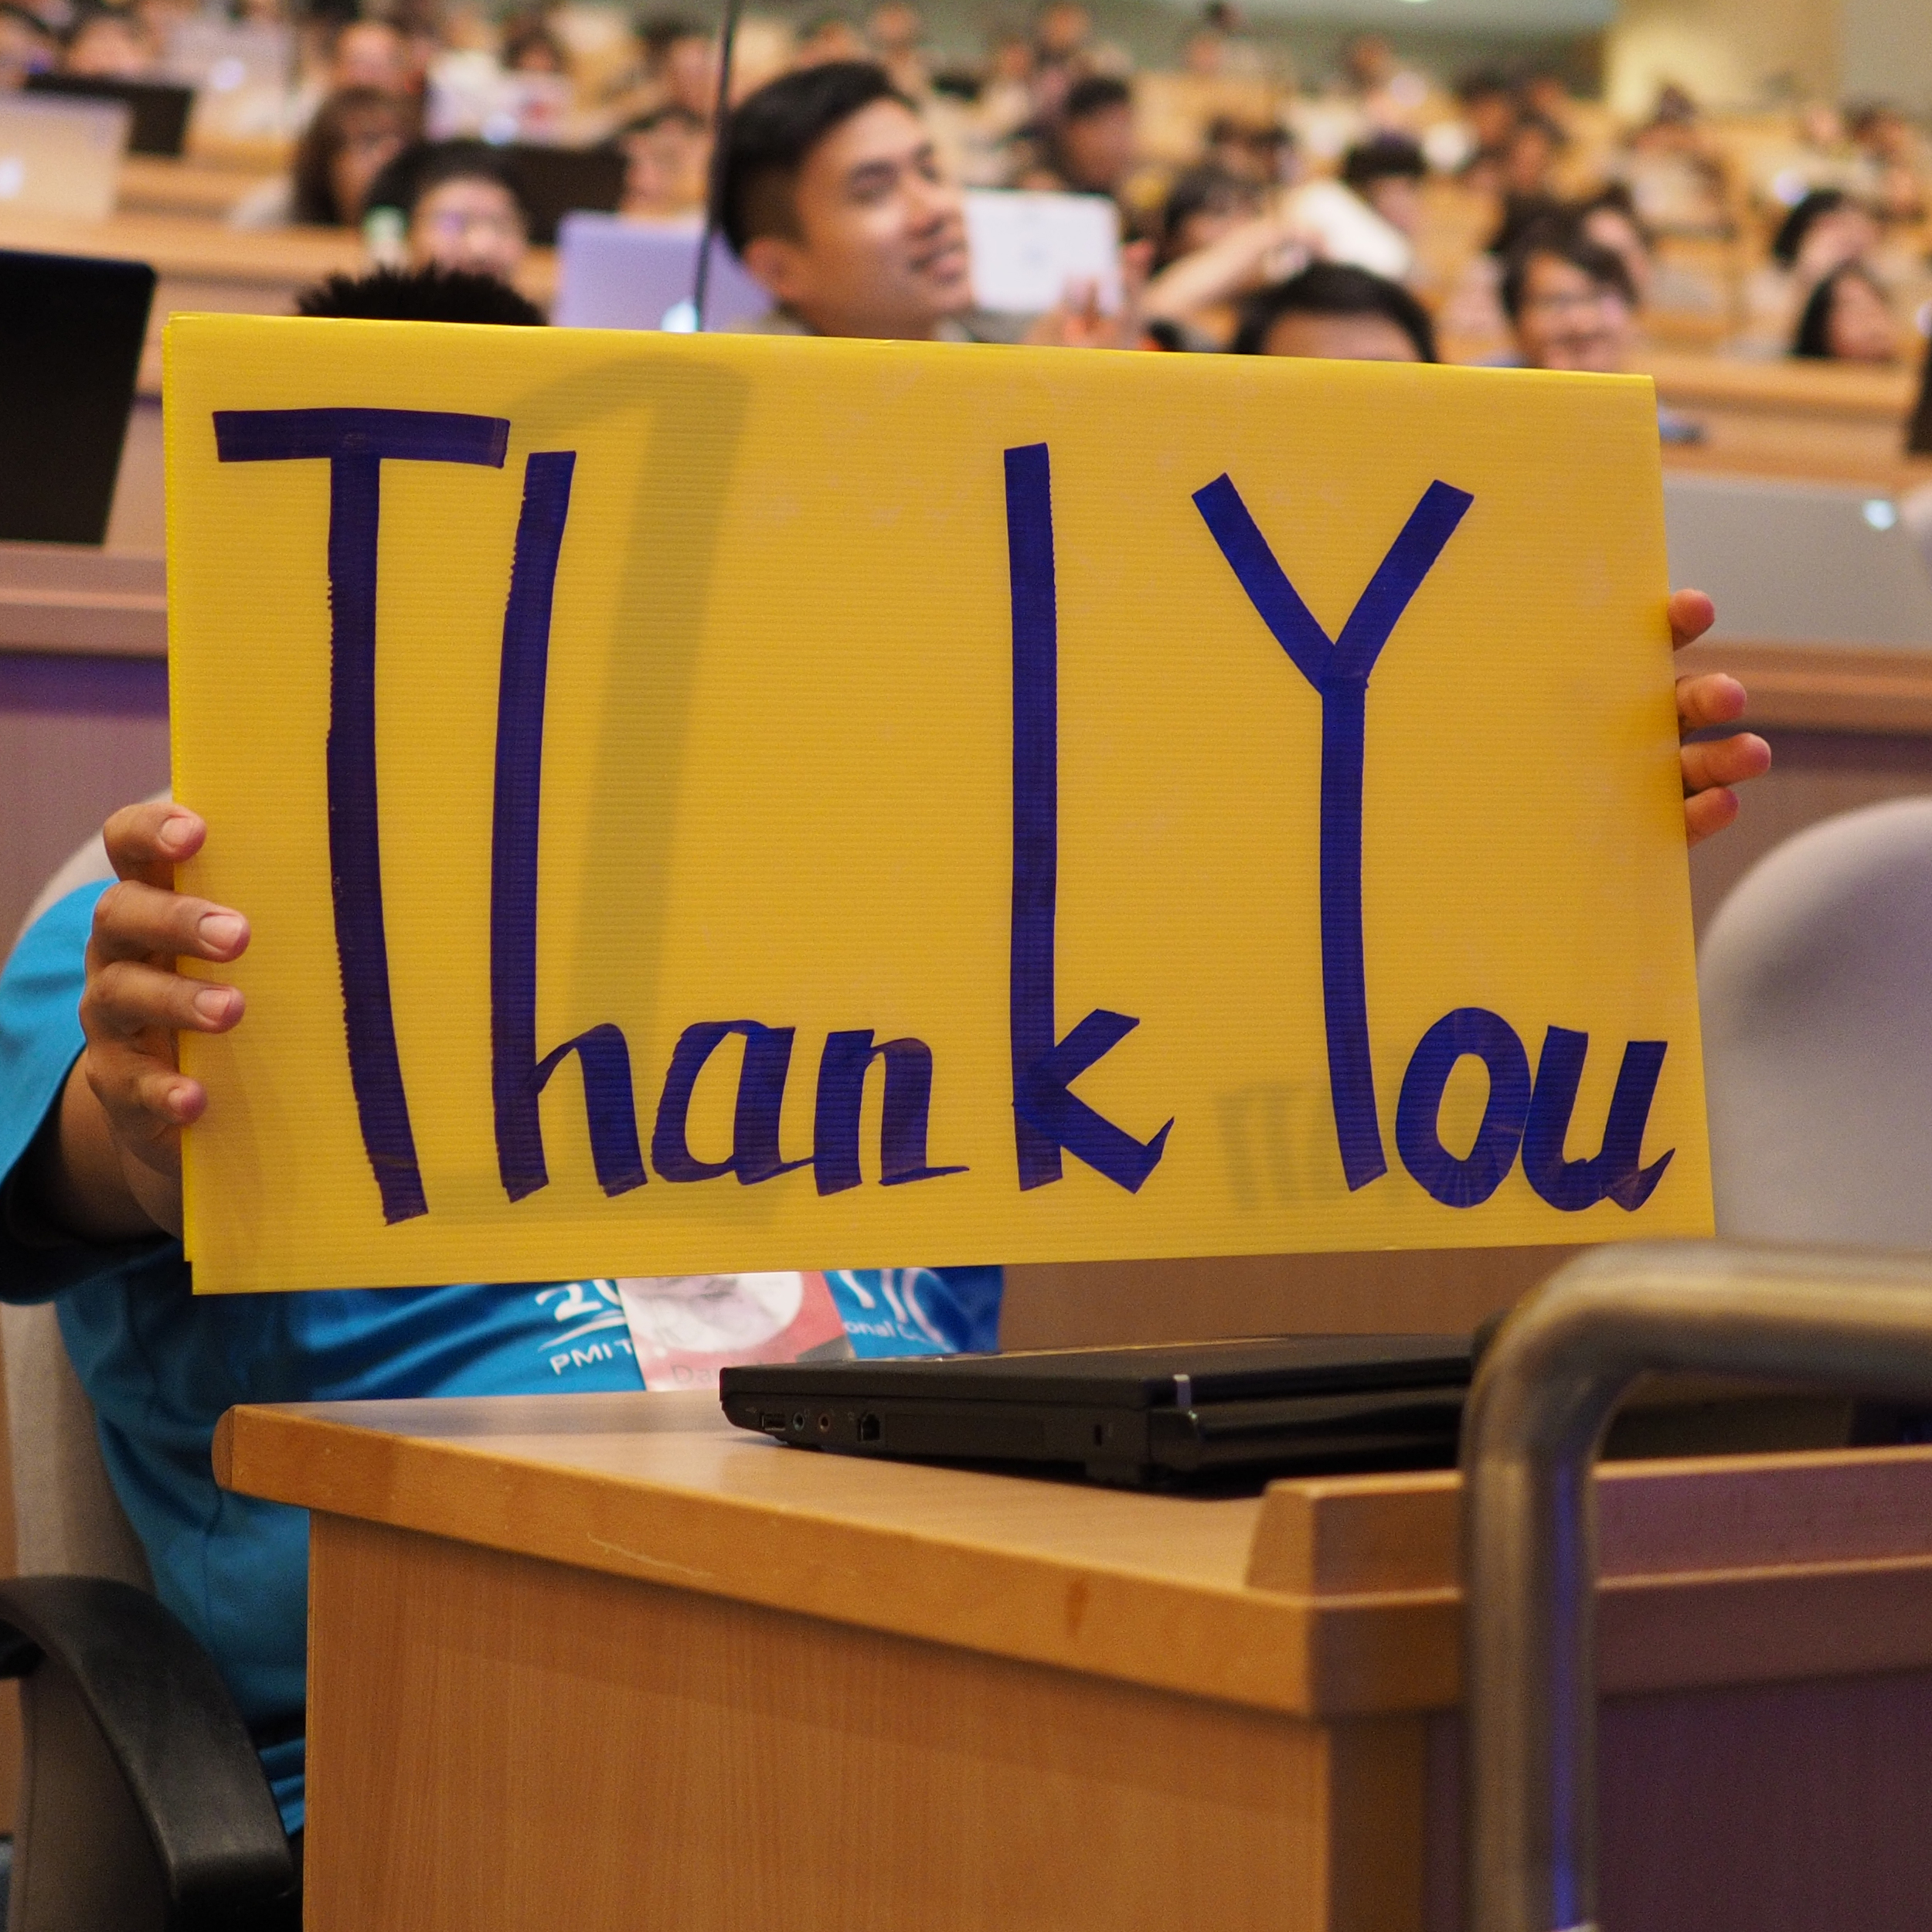 Image of students saying thank you and holding a sign.